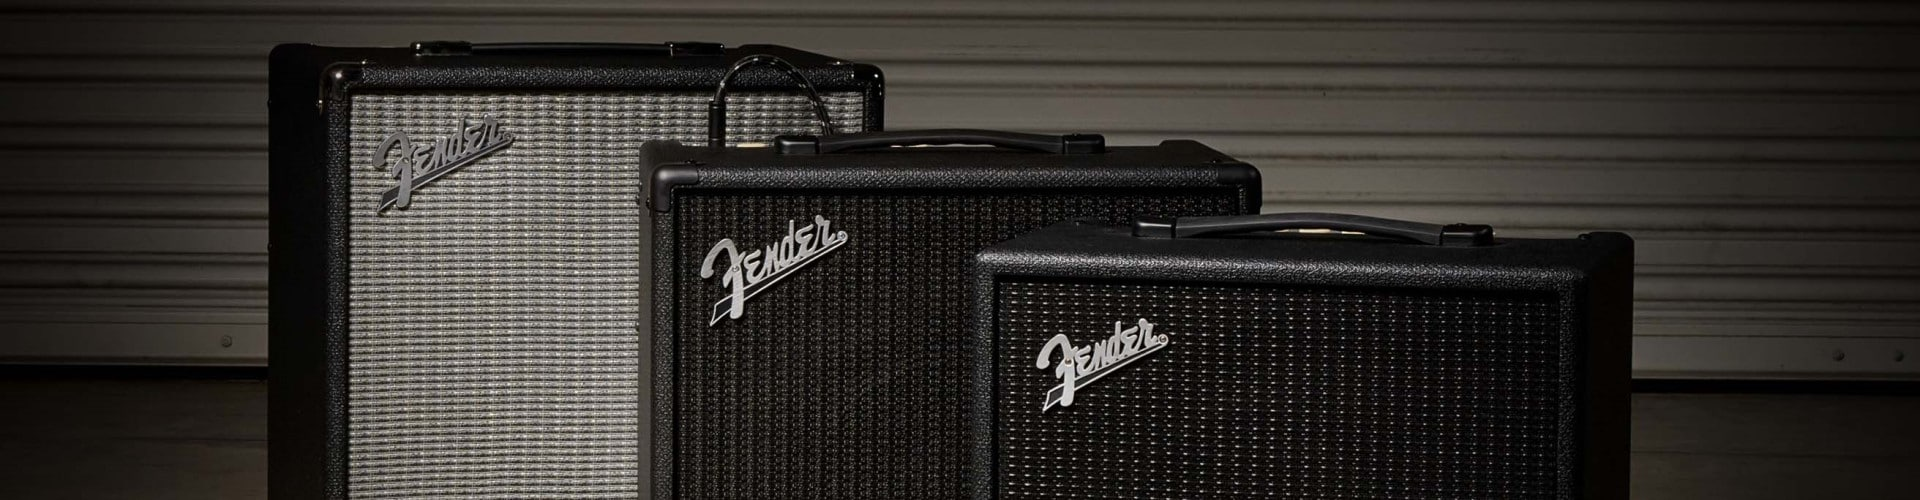 Best Modeling Amps Reviewed in Detail [Feb. 2020]